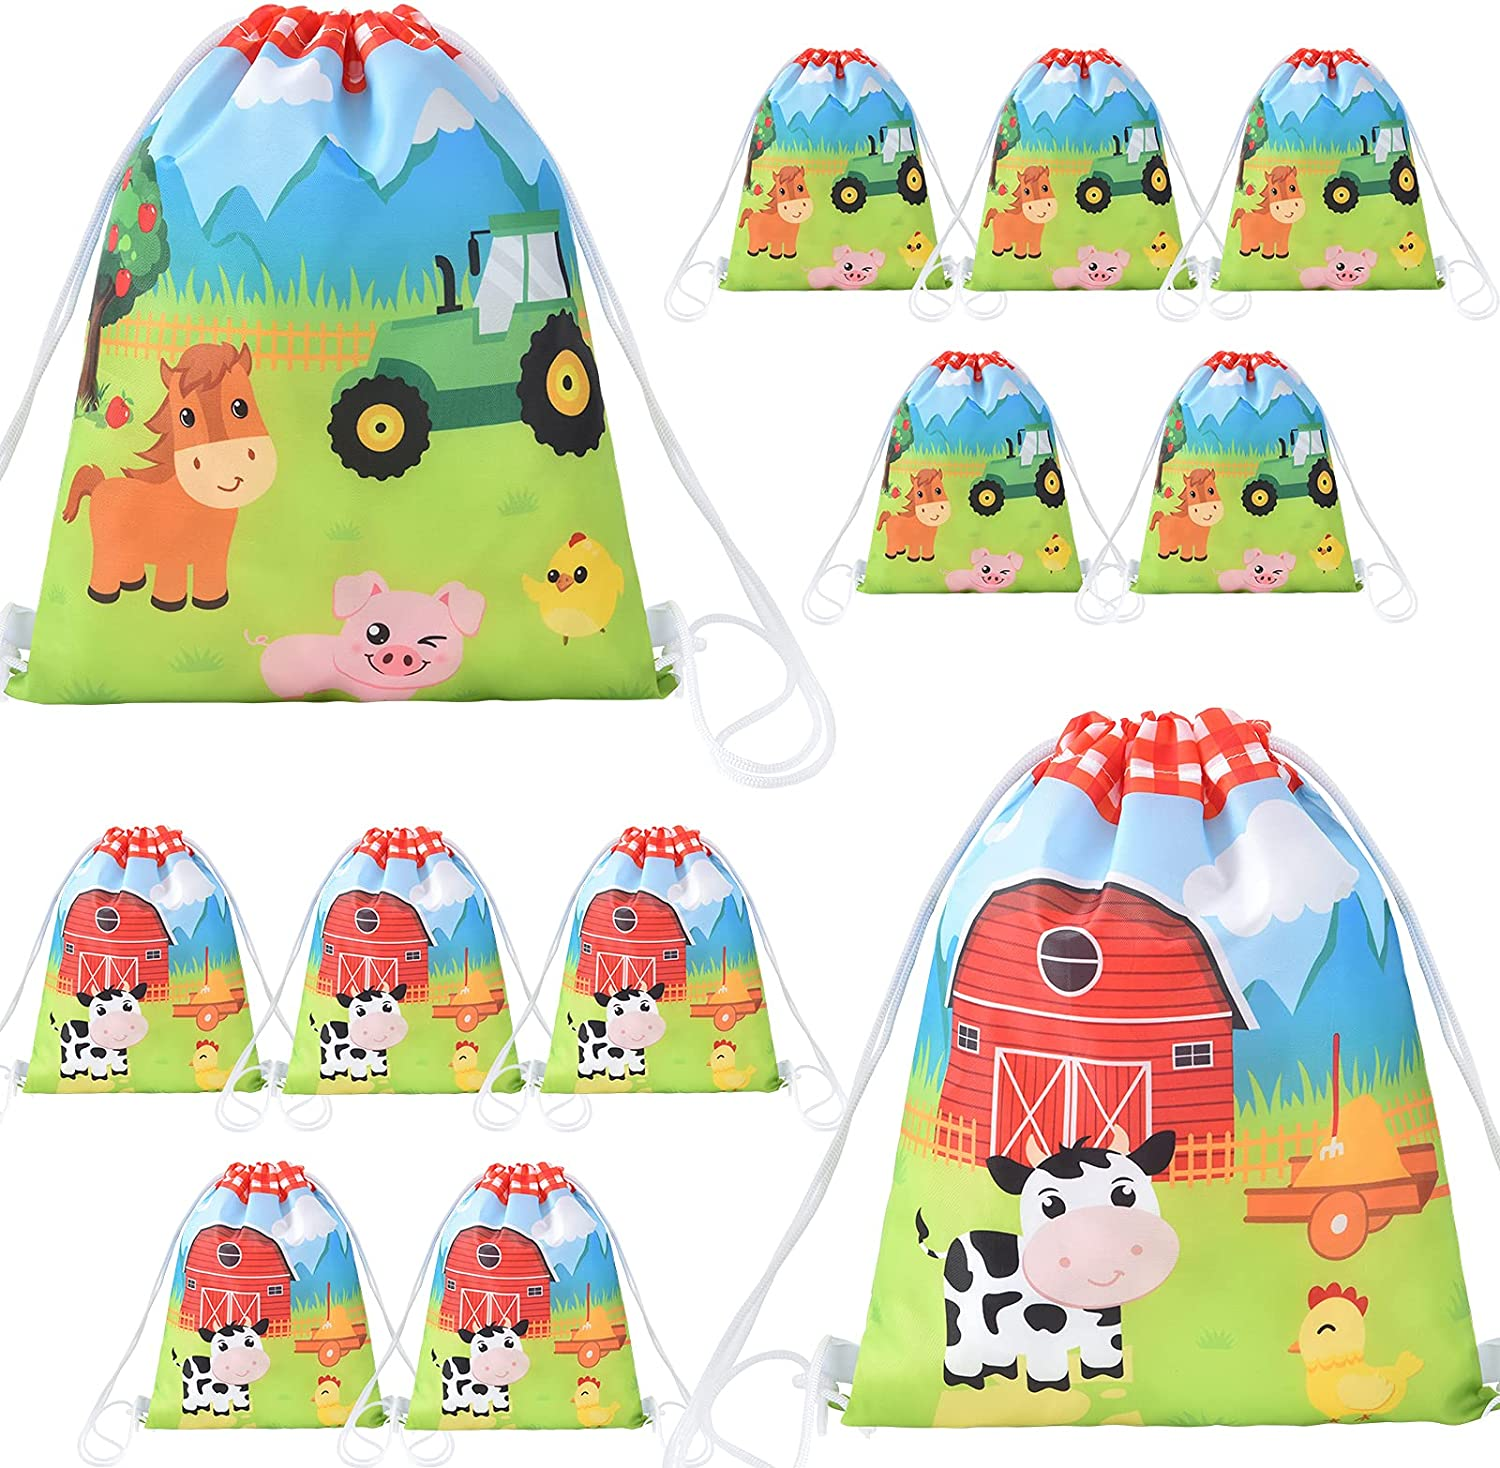 Farm String Bags - 12 Pack 10'' x 12'' Farm Animal Party Favor Gifts Bag for Kids Children Drawstring Pouches Wrap Goodie Bags Party Supplies for Birthday Christmas Travel Gym Beach